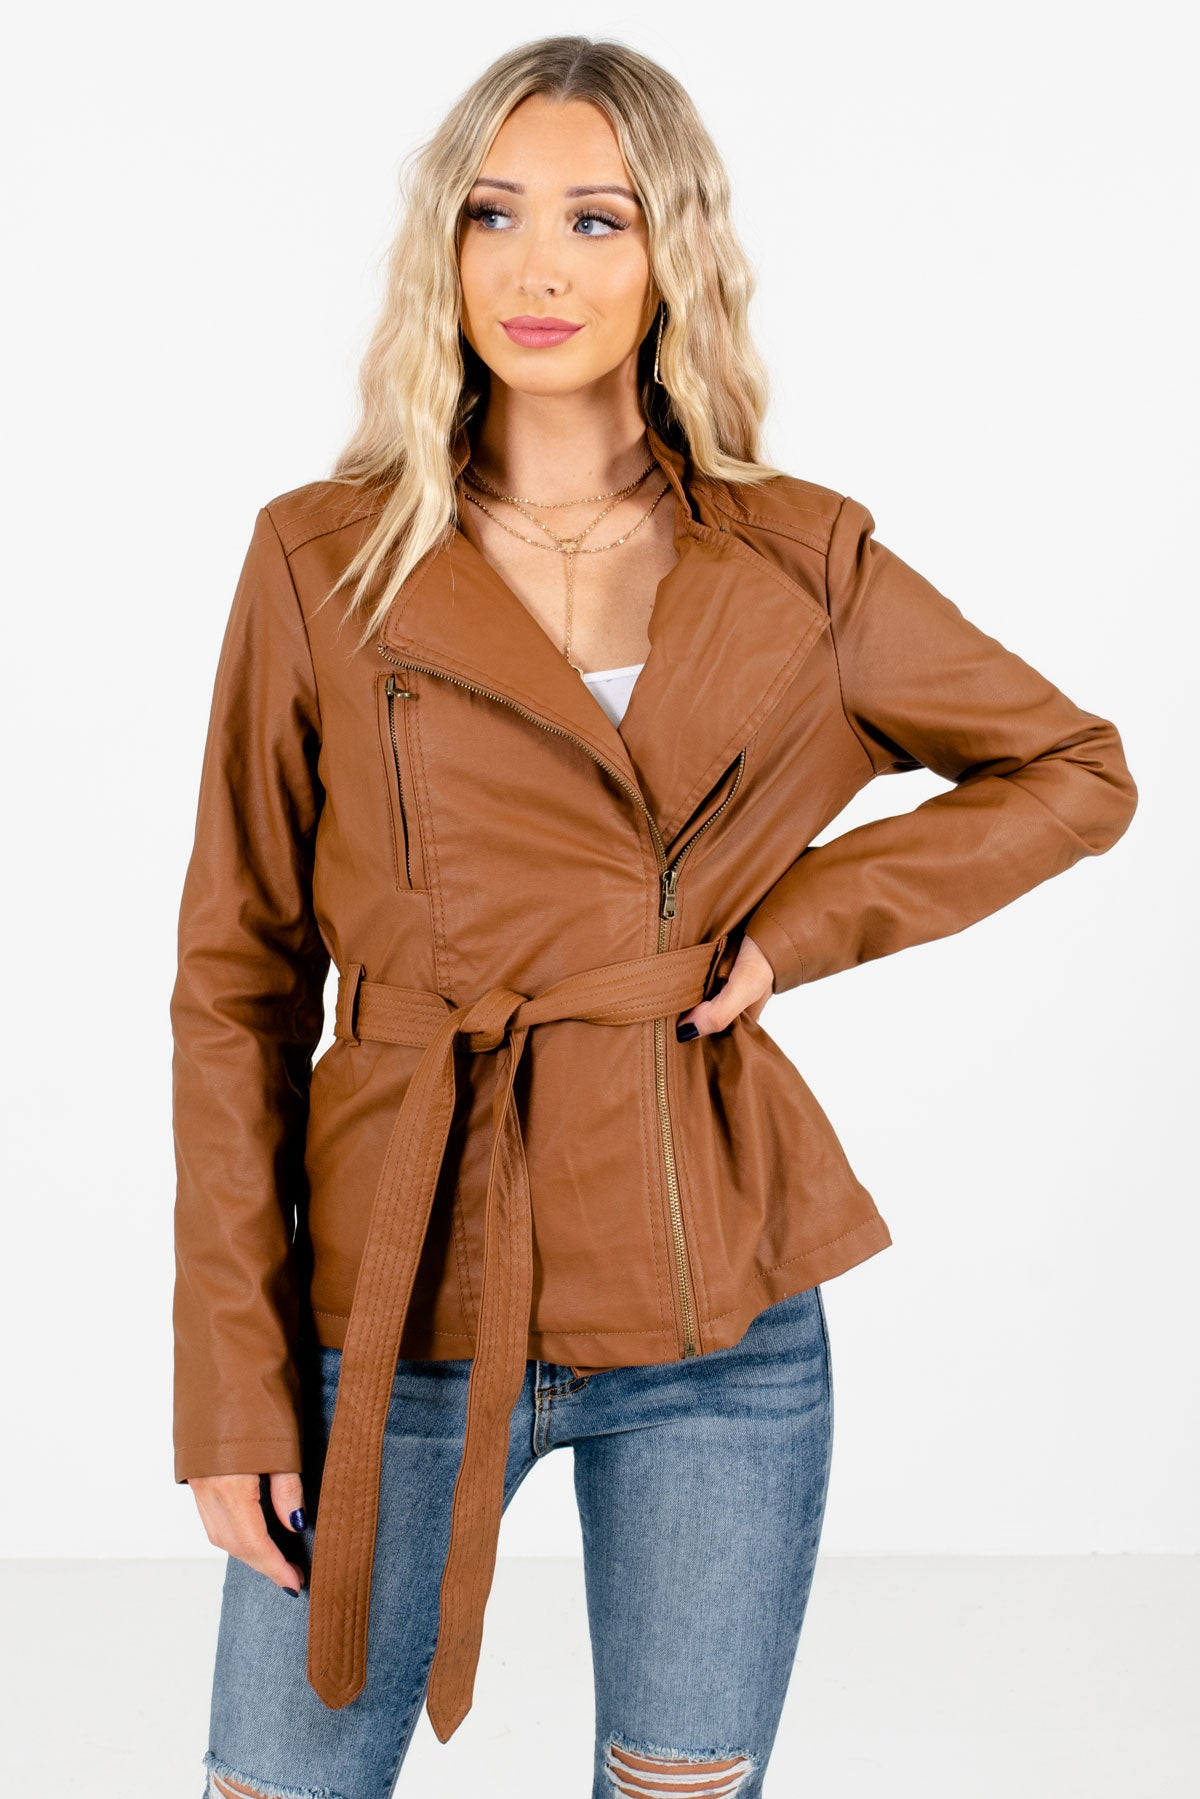 Brown Faux Leather Material Boutique Jackets for Women